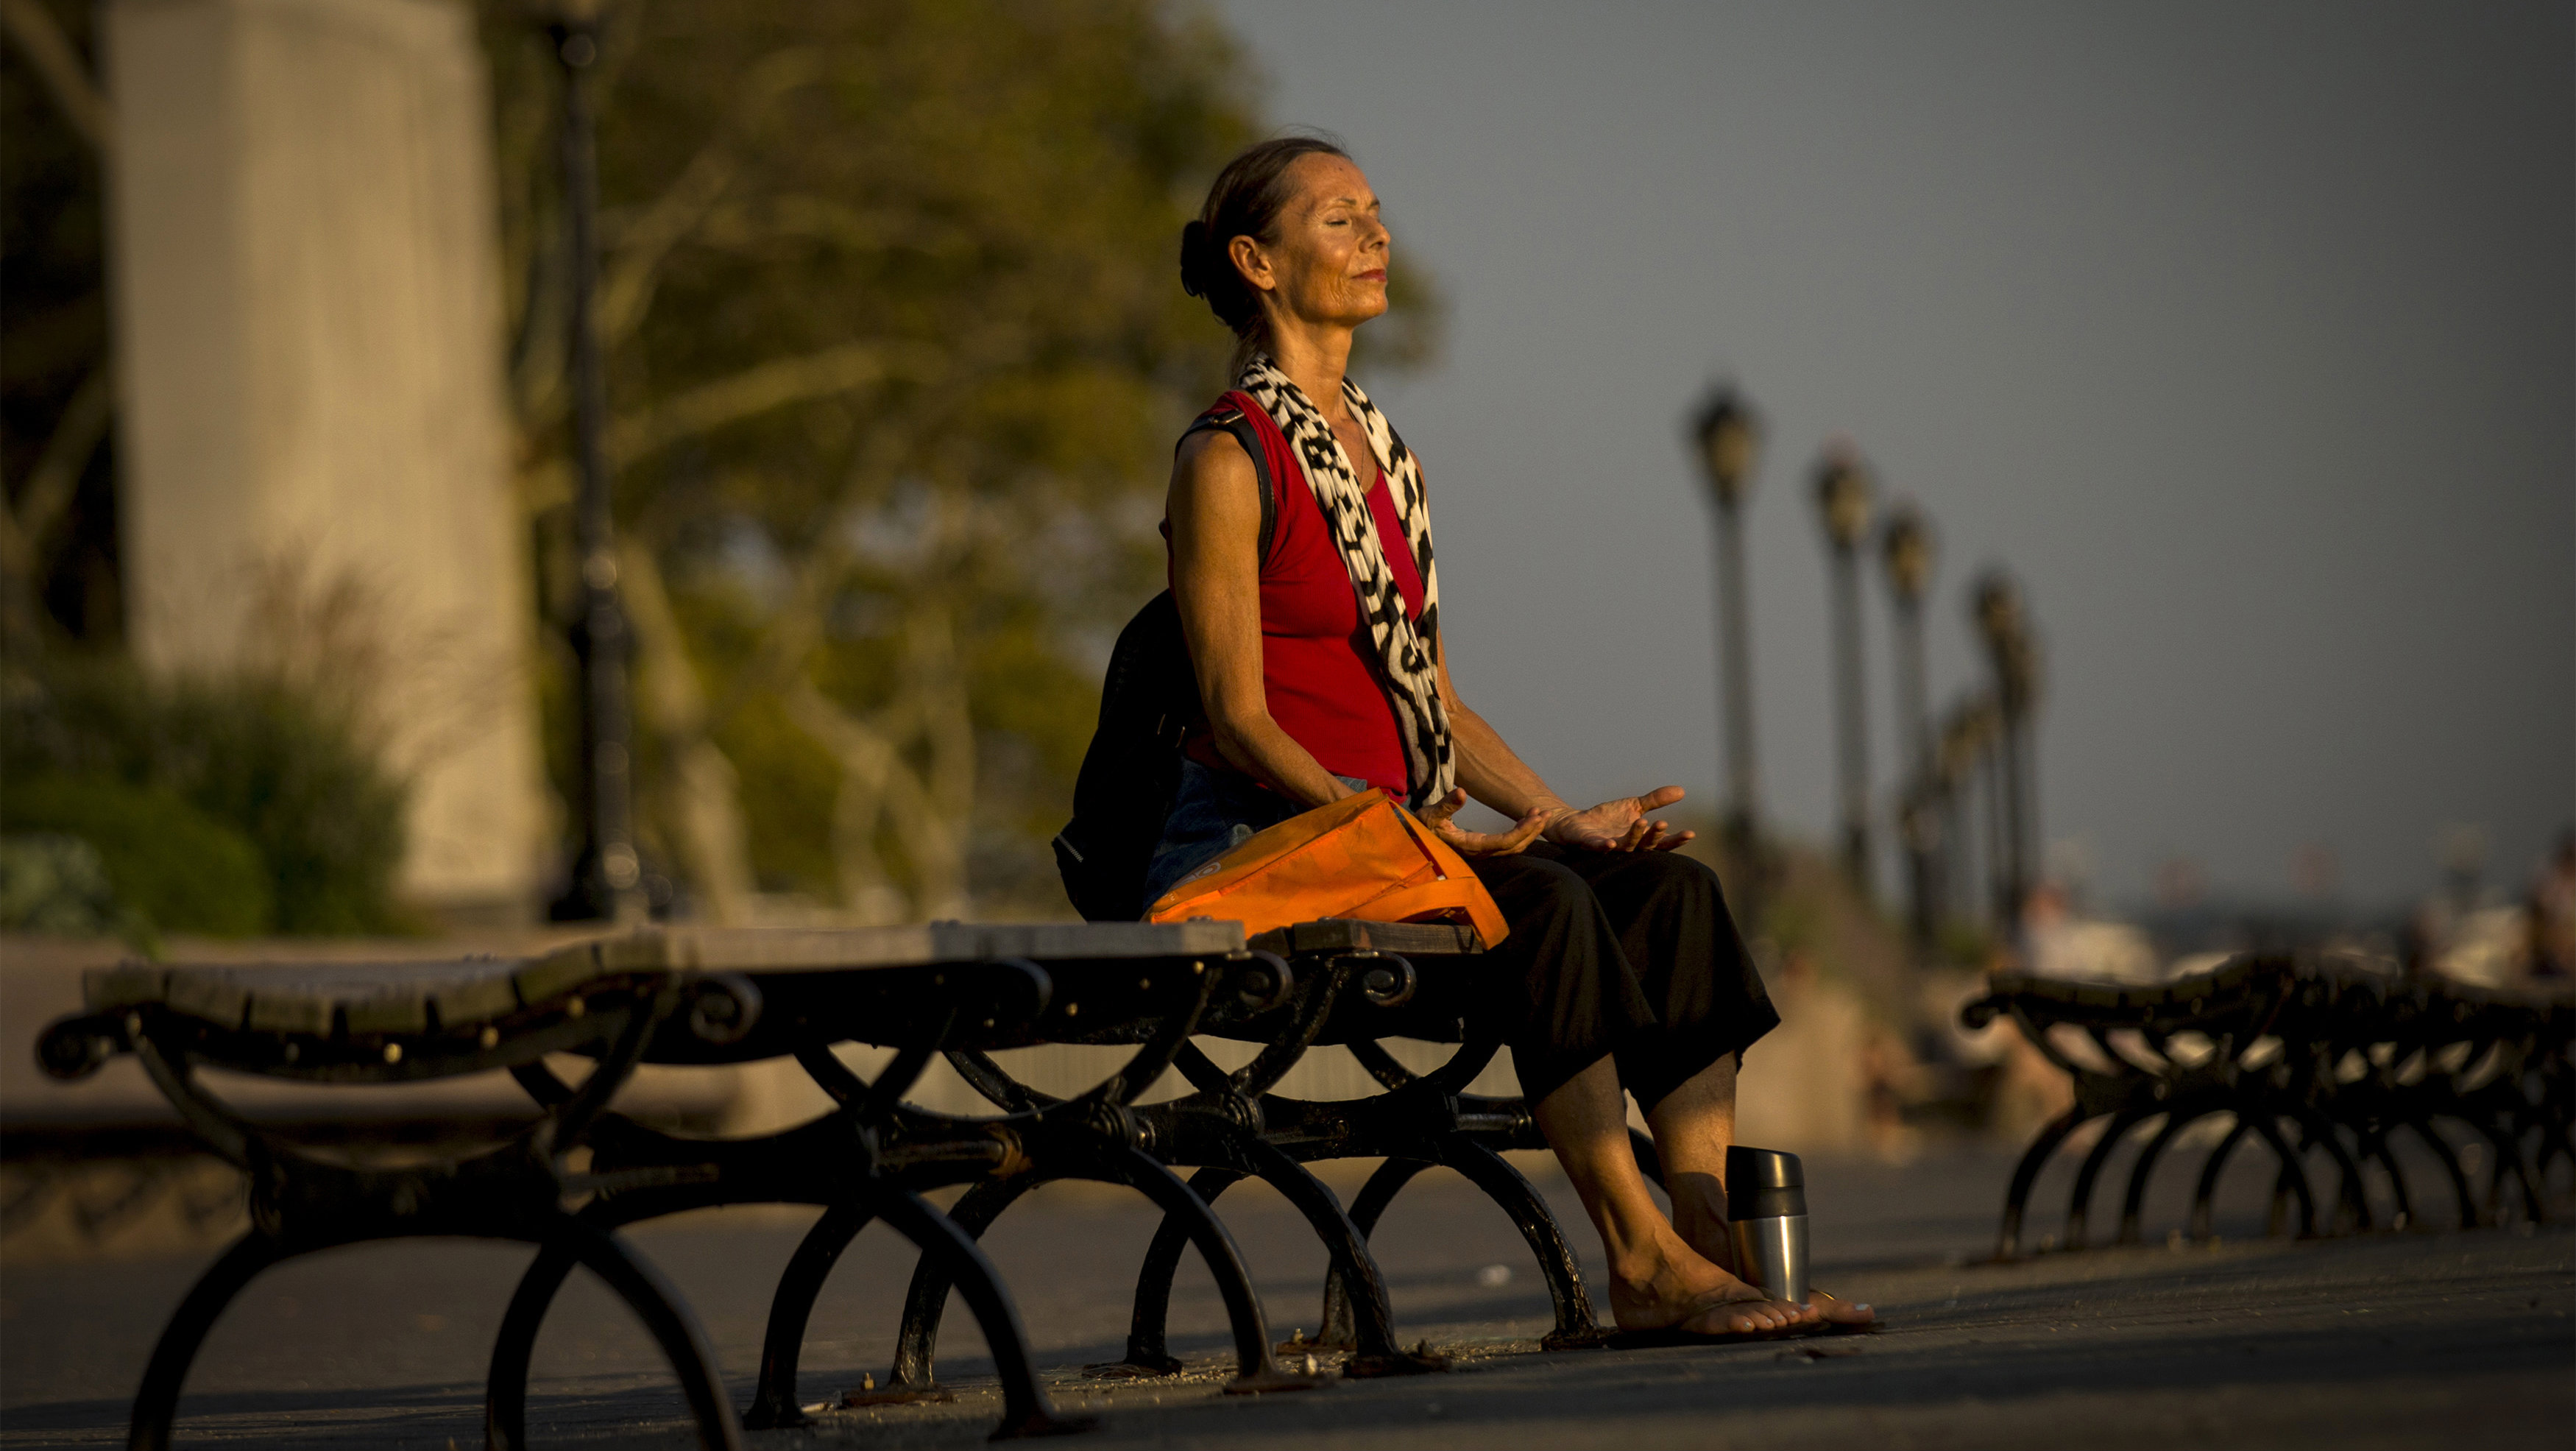 A woman takes in the sun just before sunset at the southern tip of Manhattan in New York's Battery Park, September 2, 2014. The temperature hit 92 degrees Fahrenheit (33 degree Celsius) in Central Park today for the first time in 2014. REUTERS/Brendan McDermid